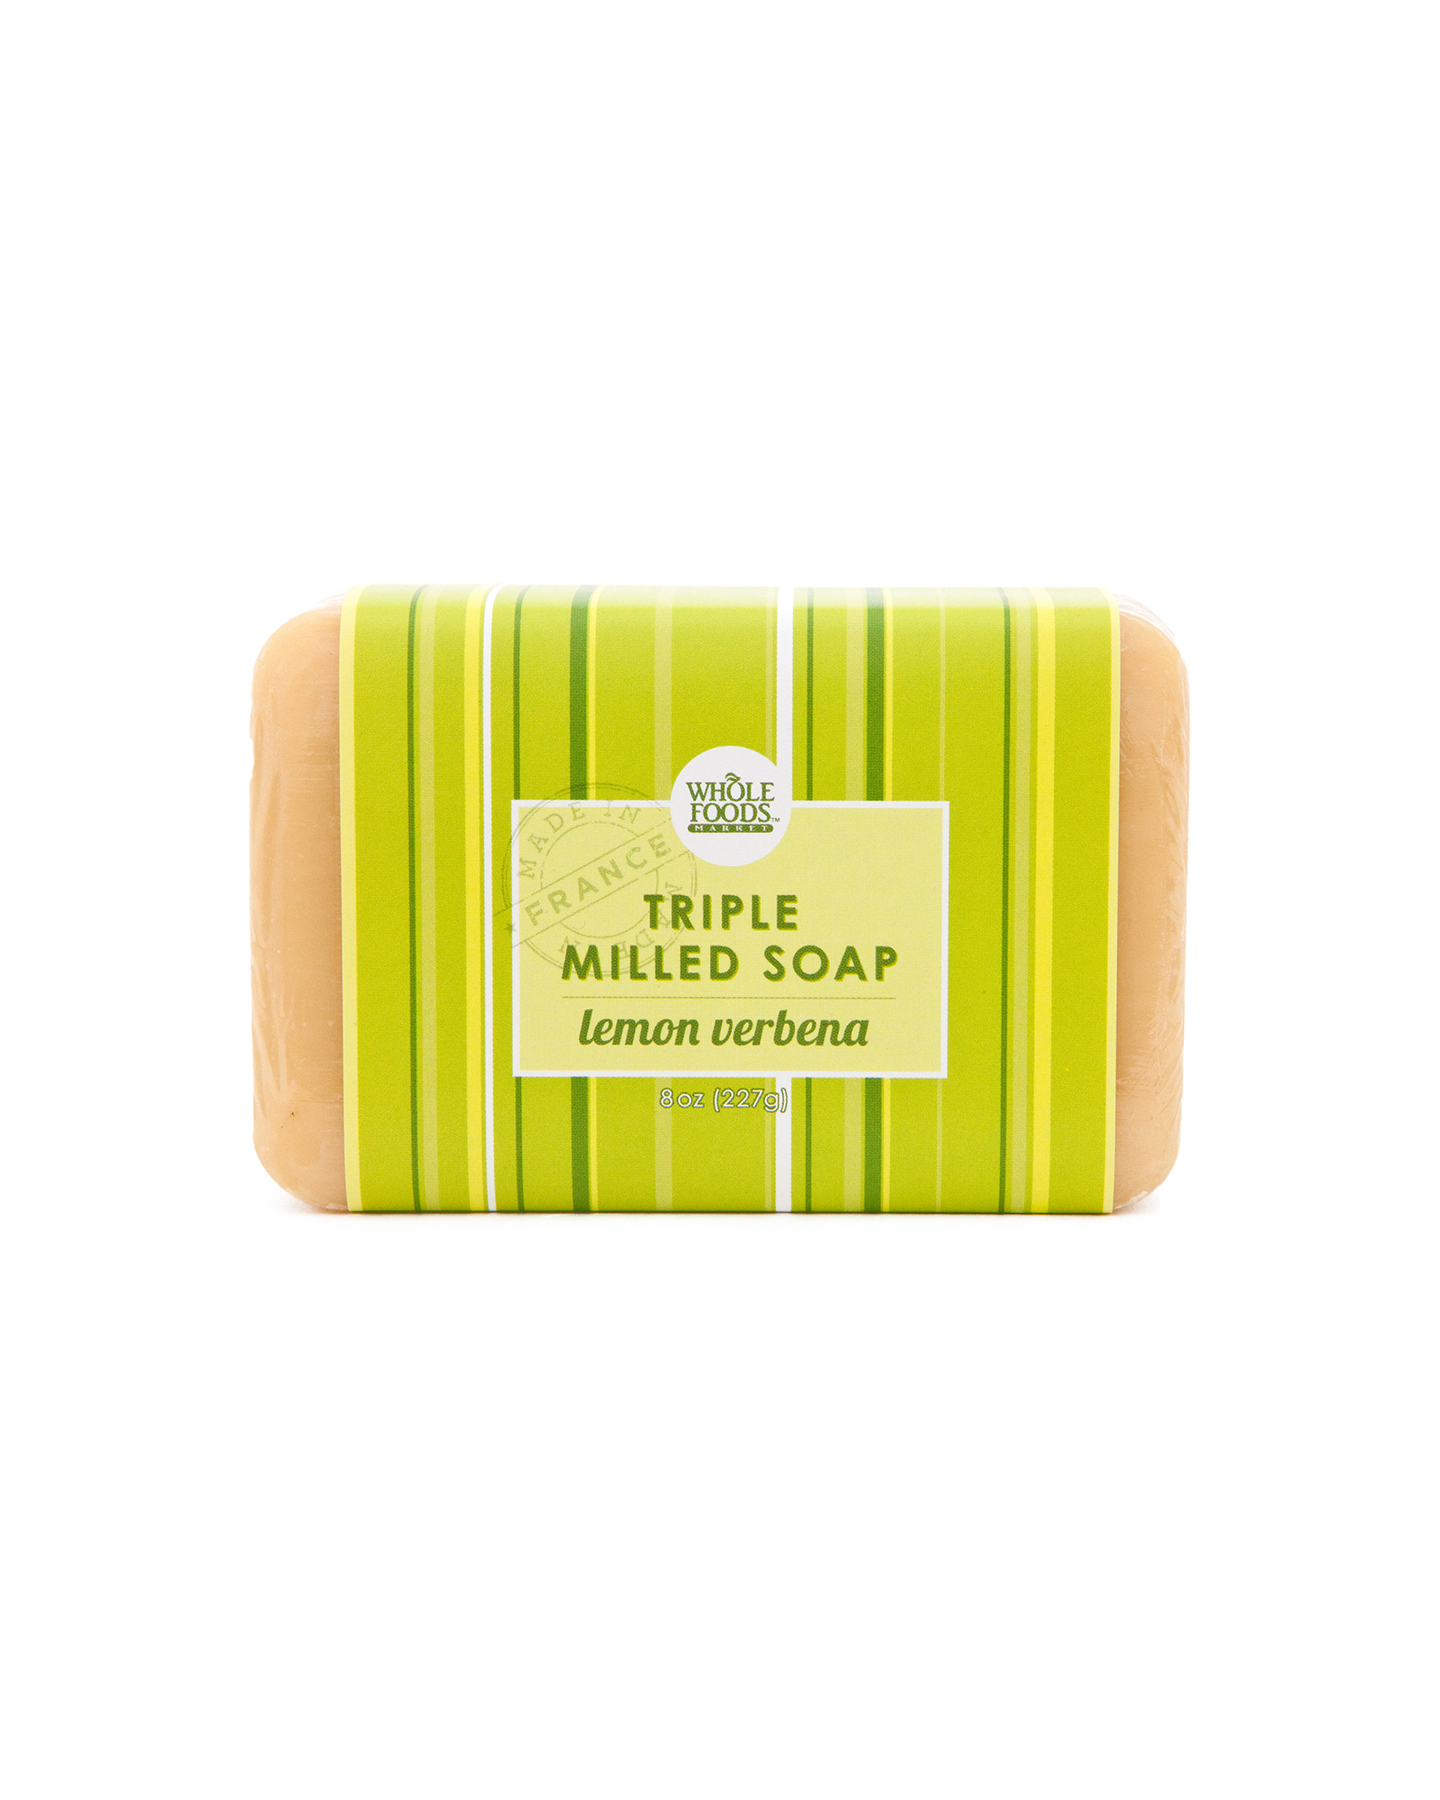 Whole Foods Triple Milled Soap